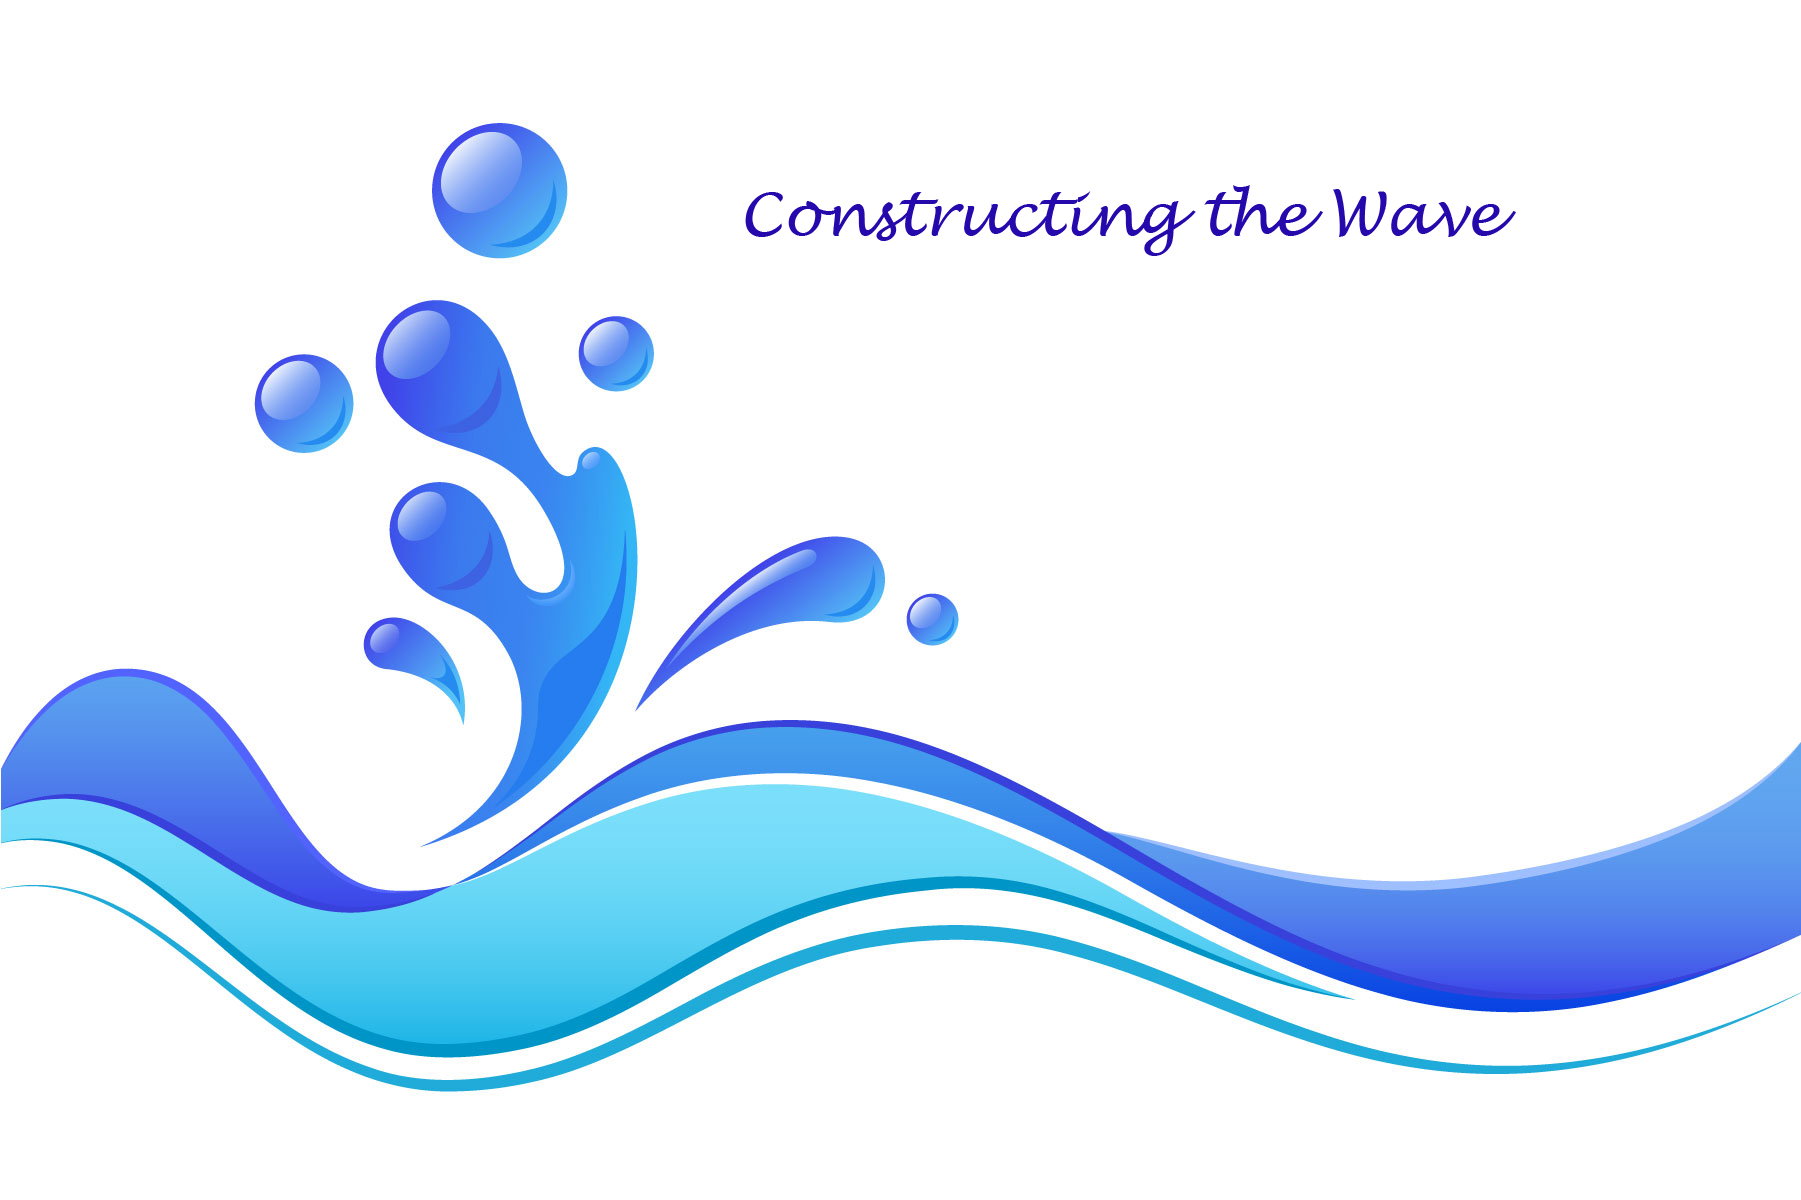 A clipart wave. Watch the construction of